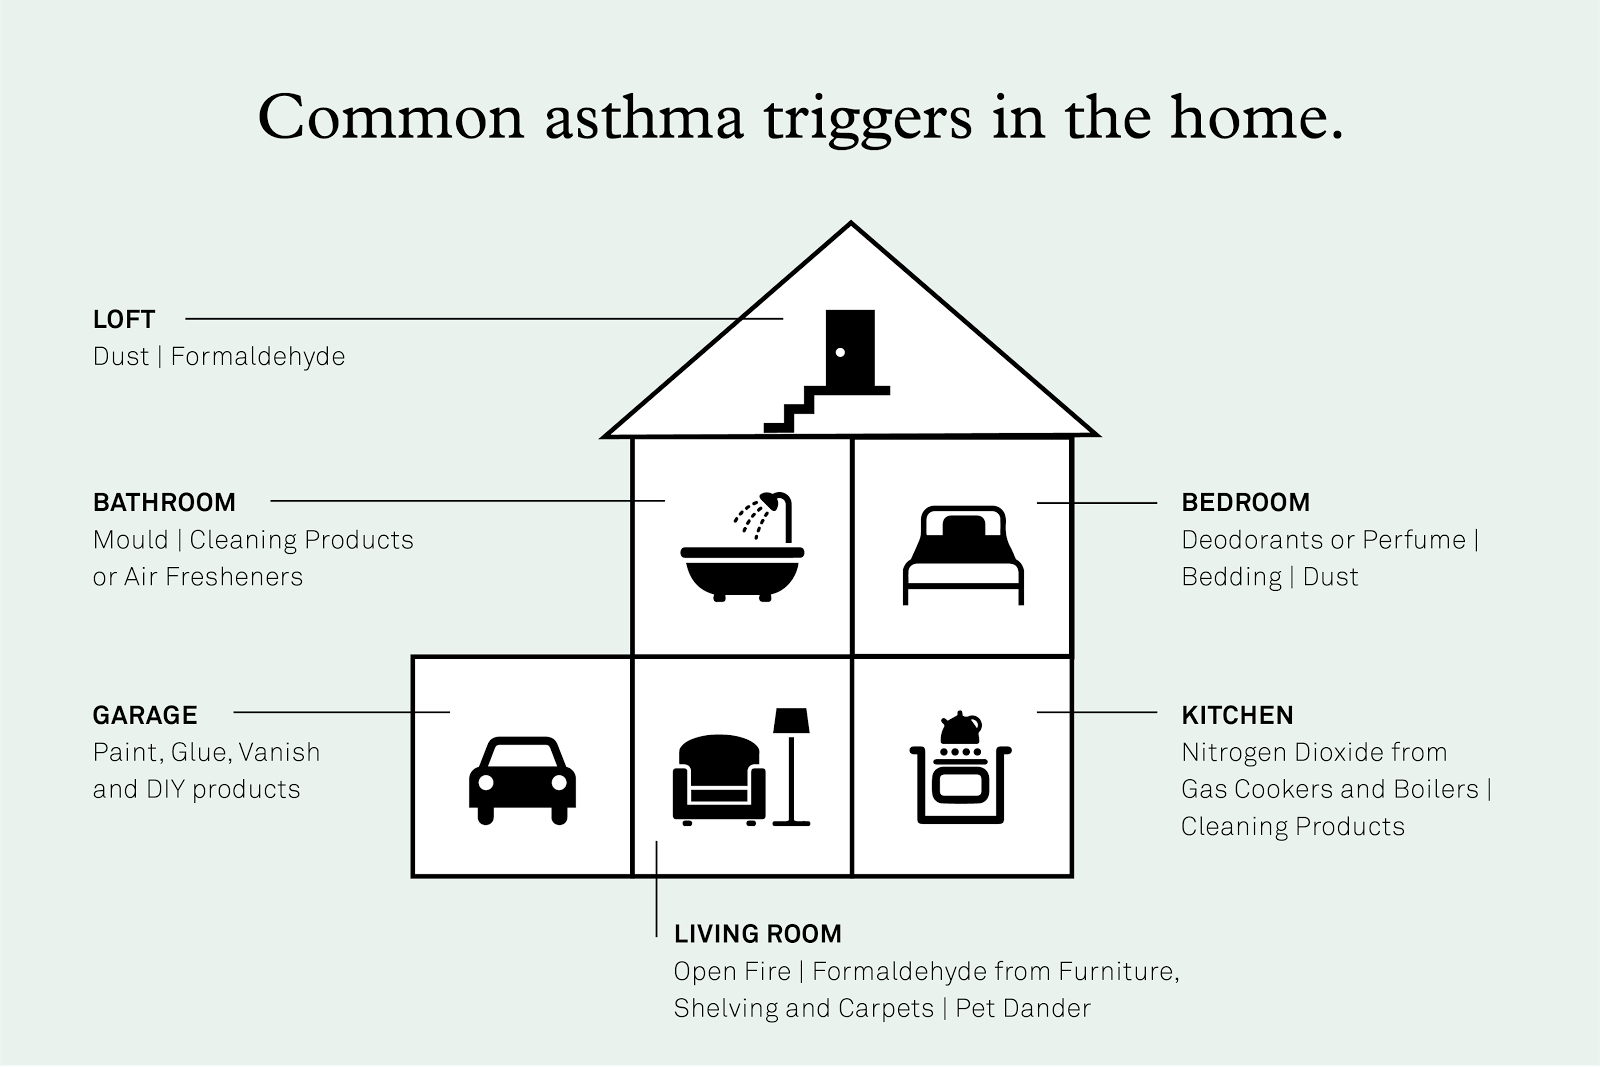 Common asthma triggers in the home